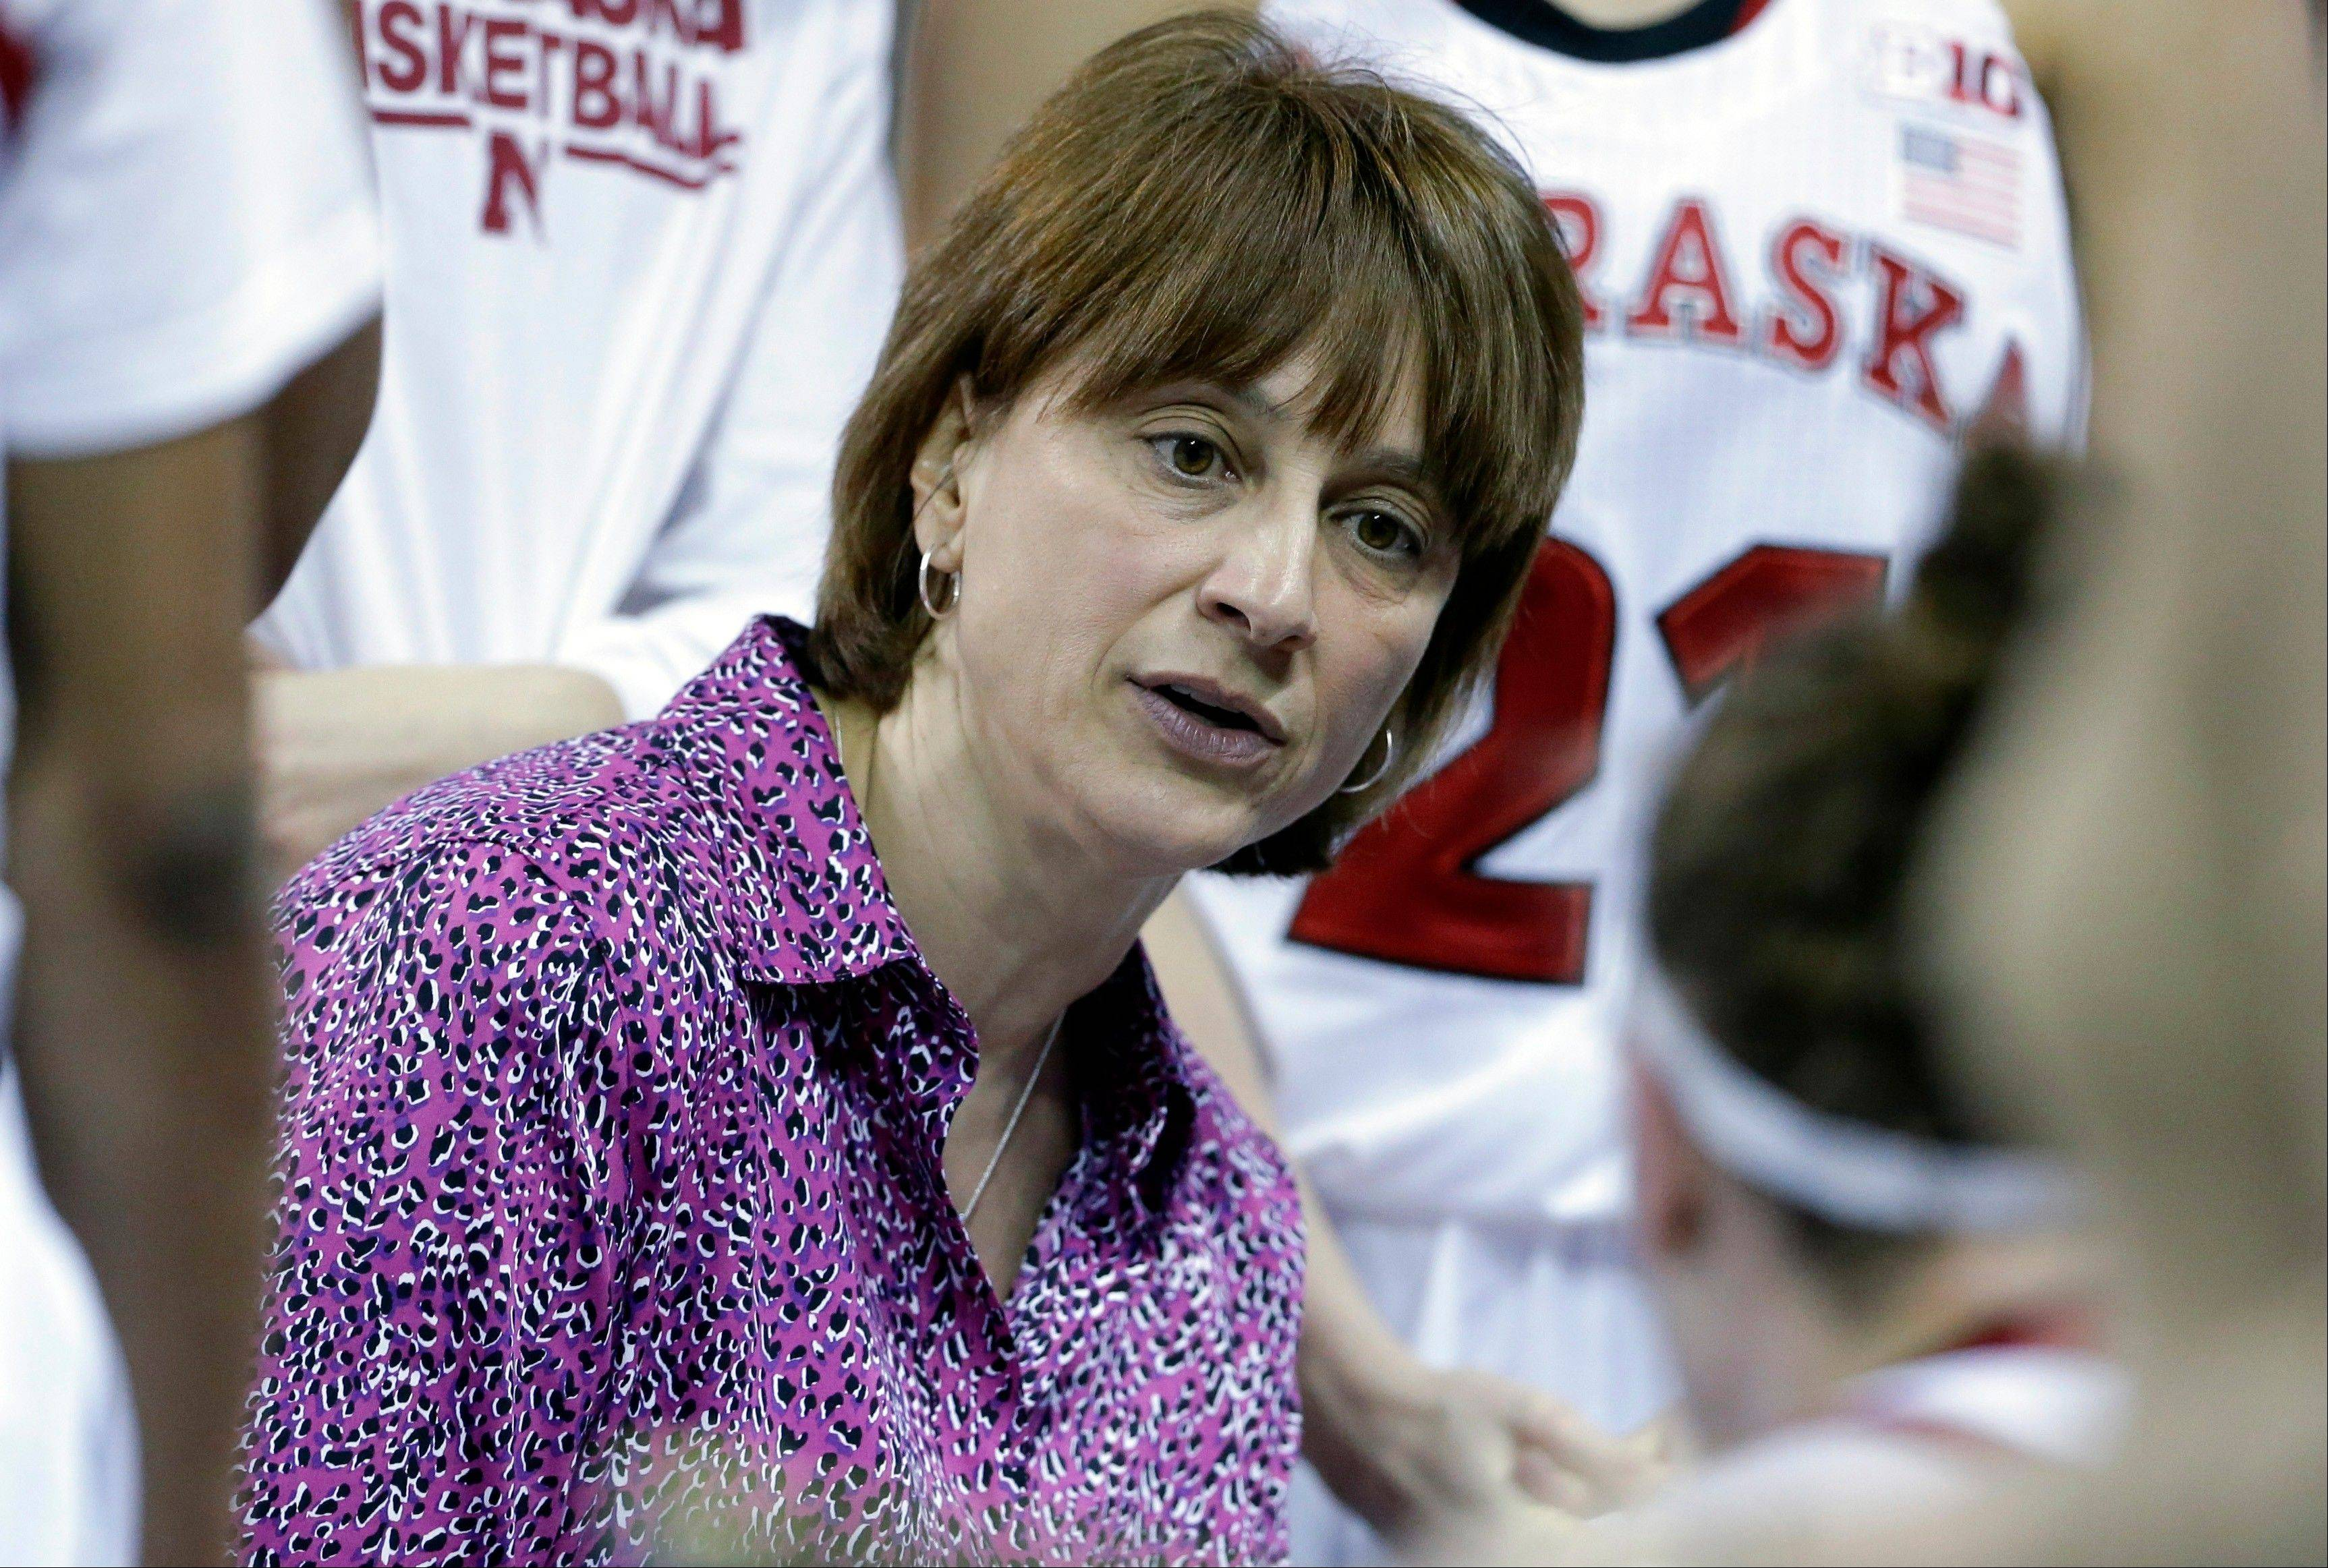 Nebraska head coach Connie Yori talks to her team during the second half of an NCAA college basketball game against Iowa in the Big Ten Conference tournament in Hoffman Estates, Ill., on Friday, March 8, 2013. Nebraska won 76-61.